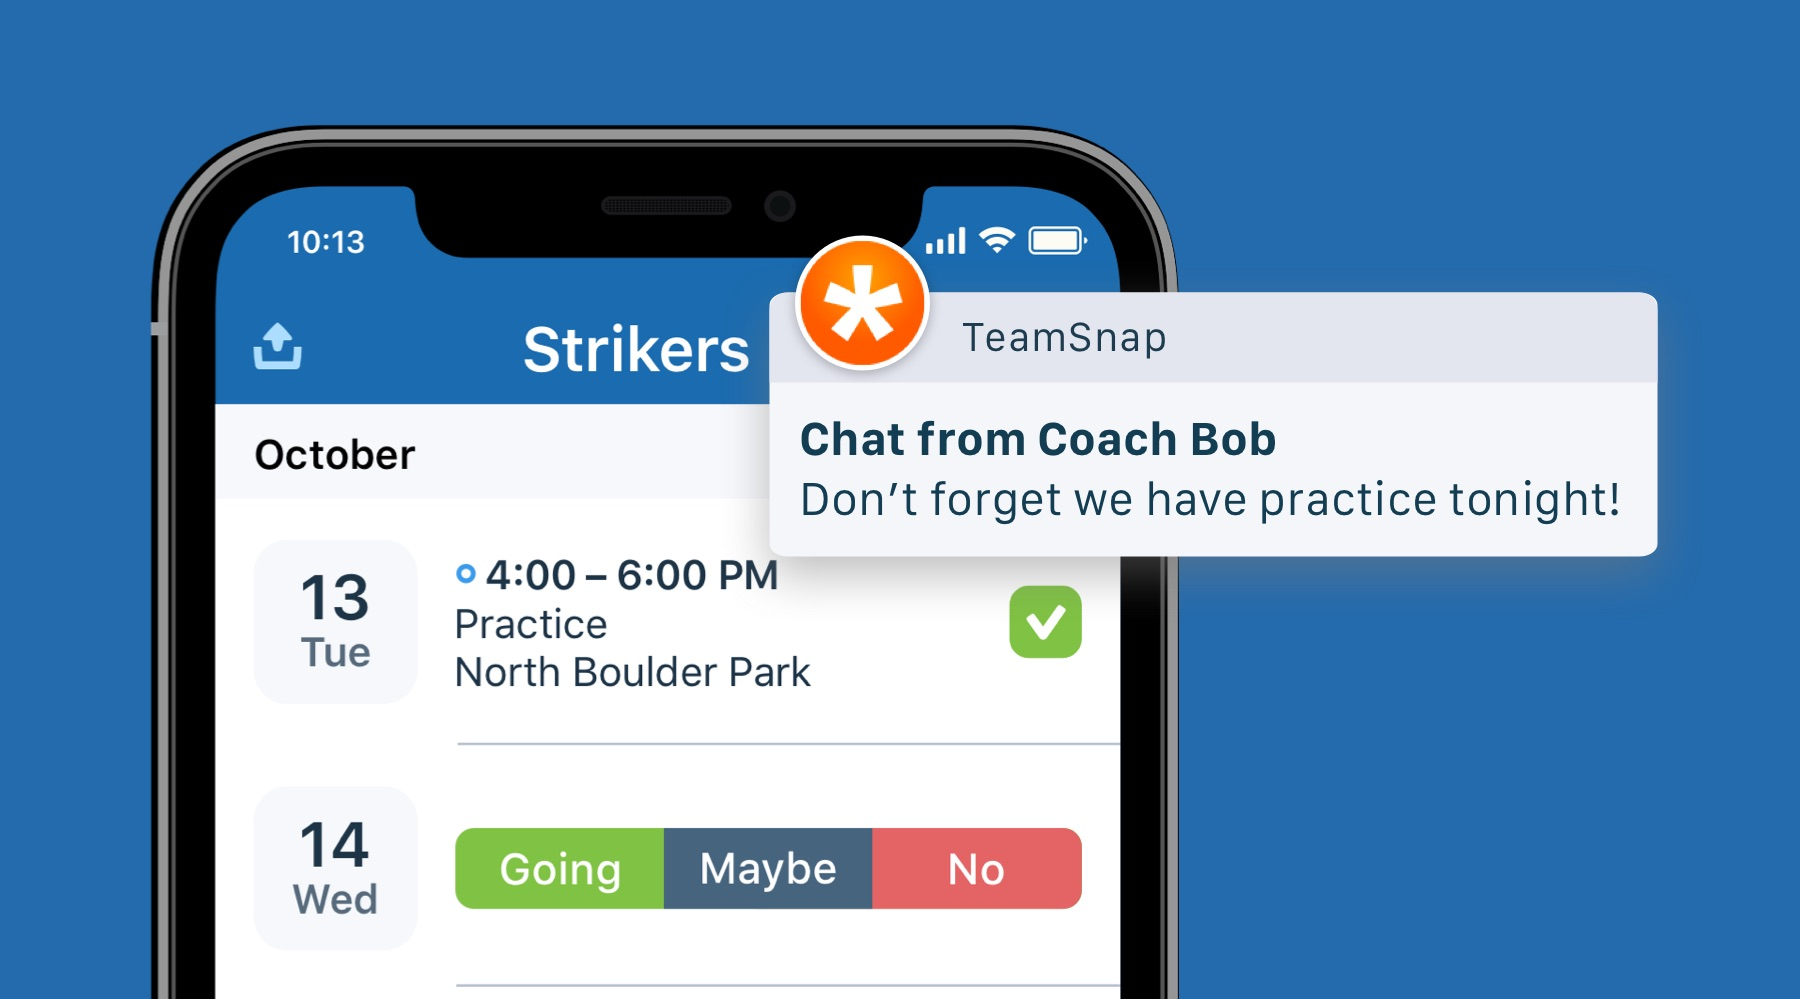 Registration is a breeze with sport league management software TeamSnap